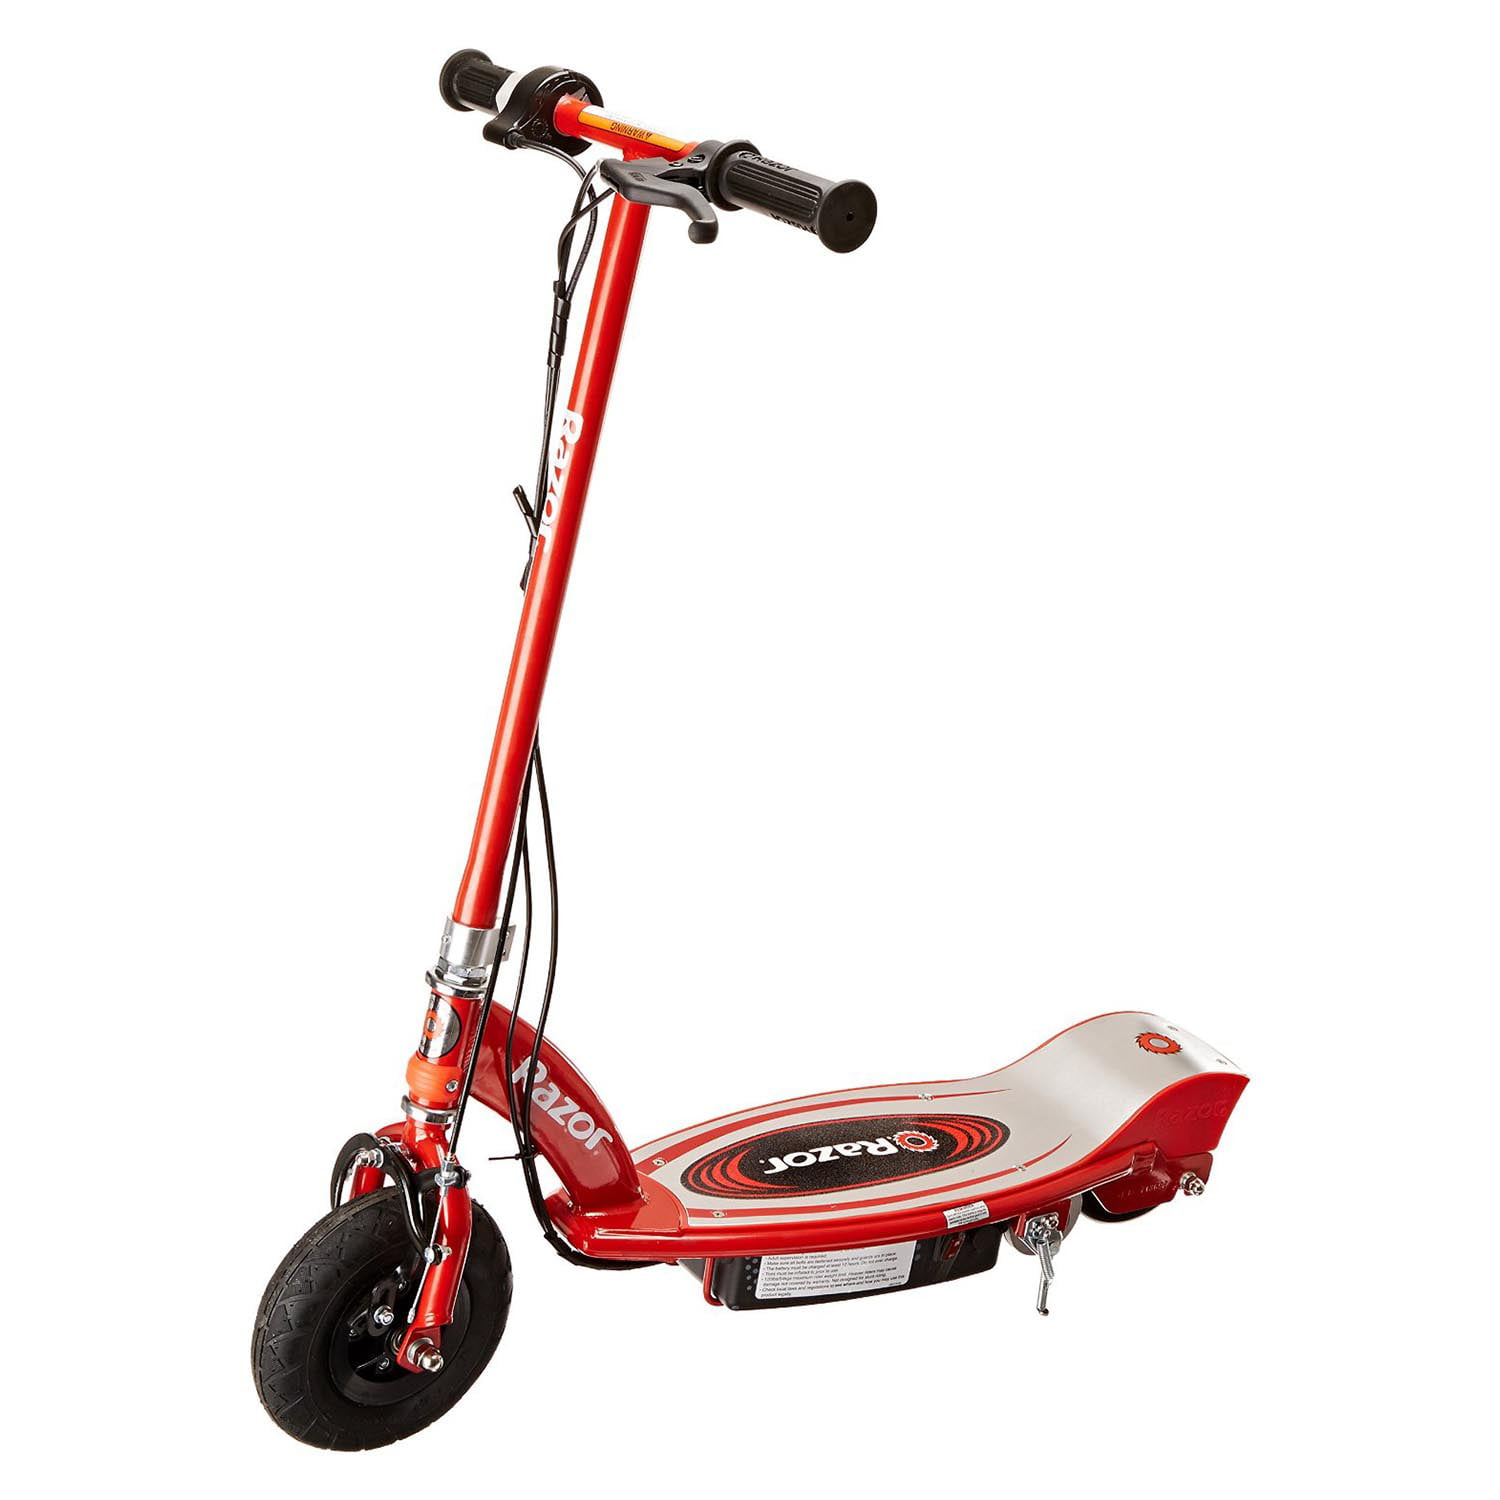 Razor E100 Motorized 24 Volt Battery Electric Powered Kids Ride-On Scooter, Red by Razor